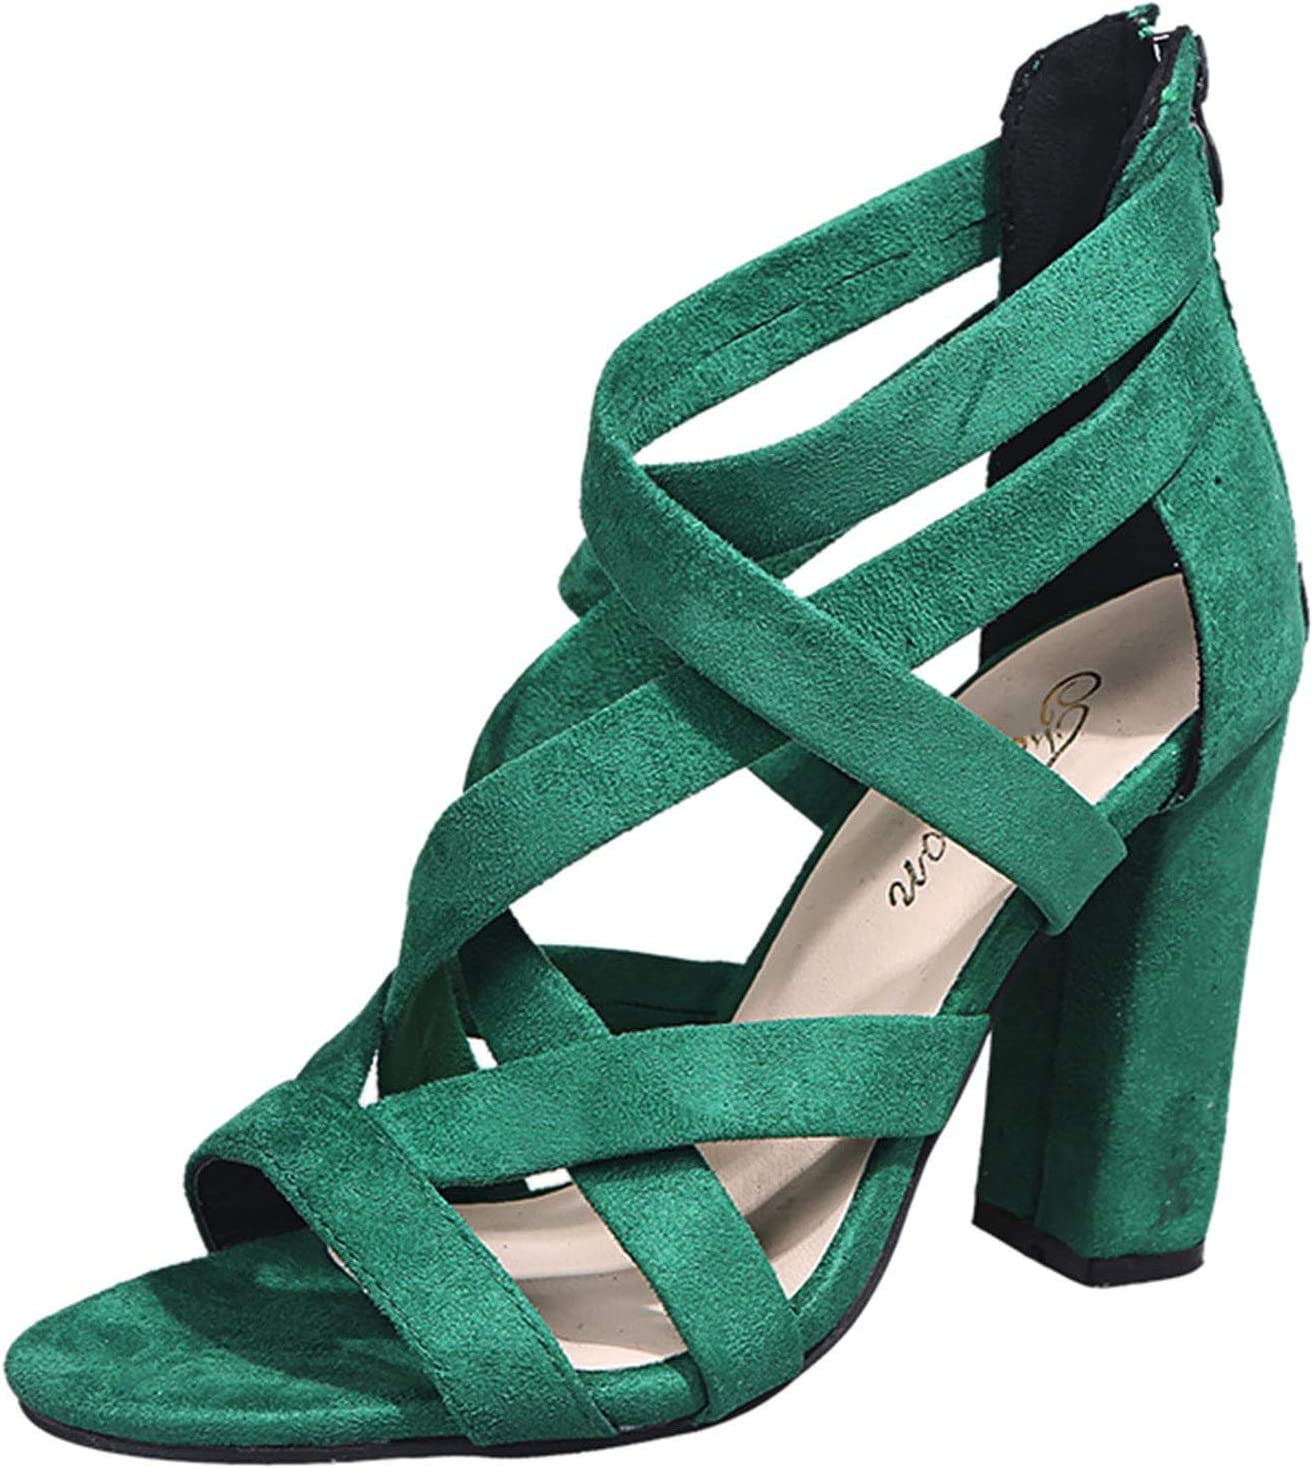 New product type PLENTOP Sandals for Women Popularity Summer Breathable High Z Heeled Square